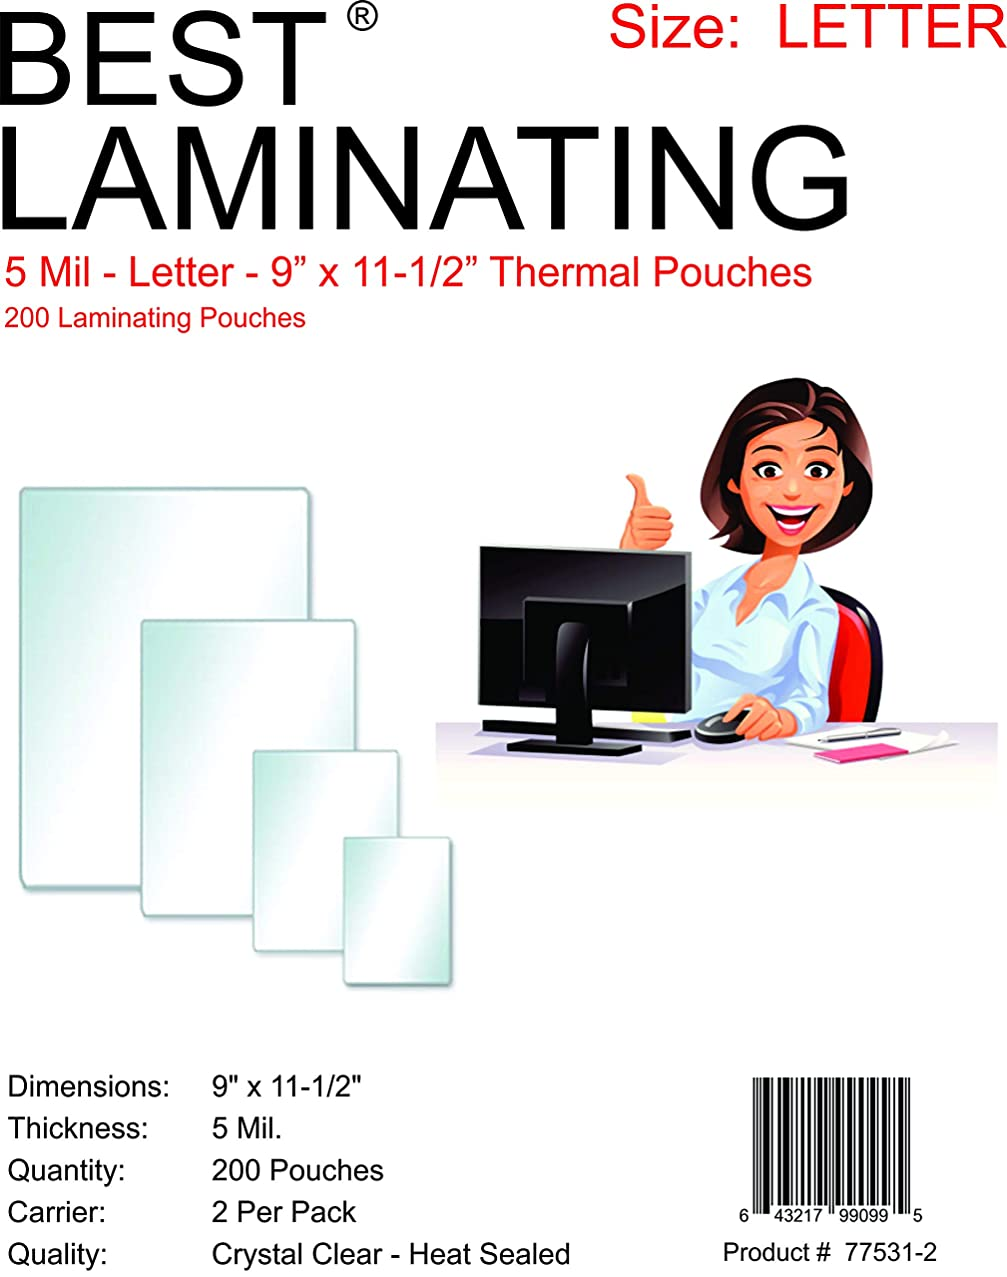 Best Laminating - 5 Mil Clear Letter Size Thermal Laminating Pouches - 9 X 11.5 (200 Pouches)